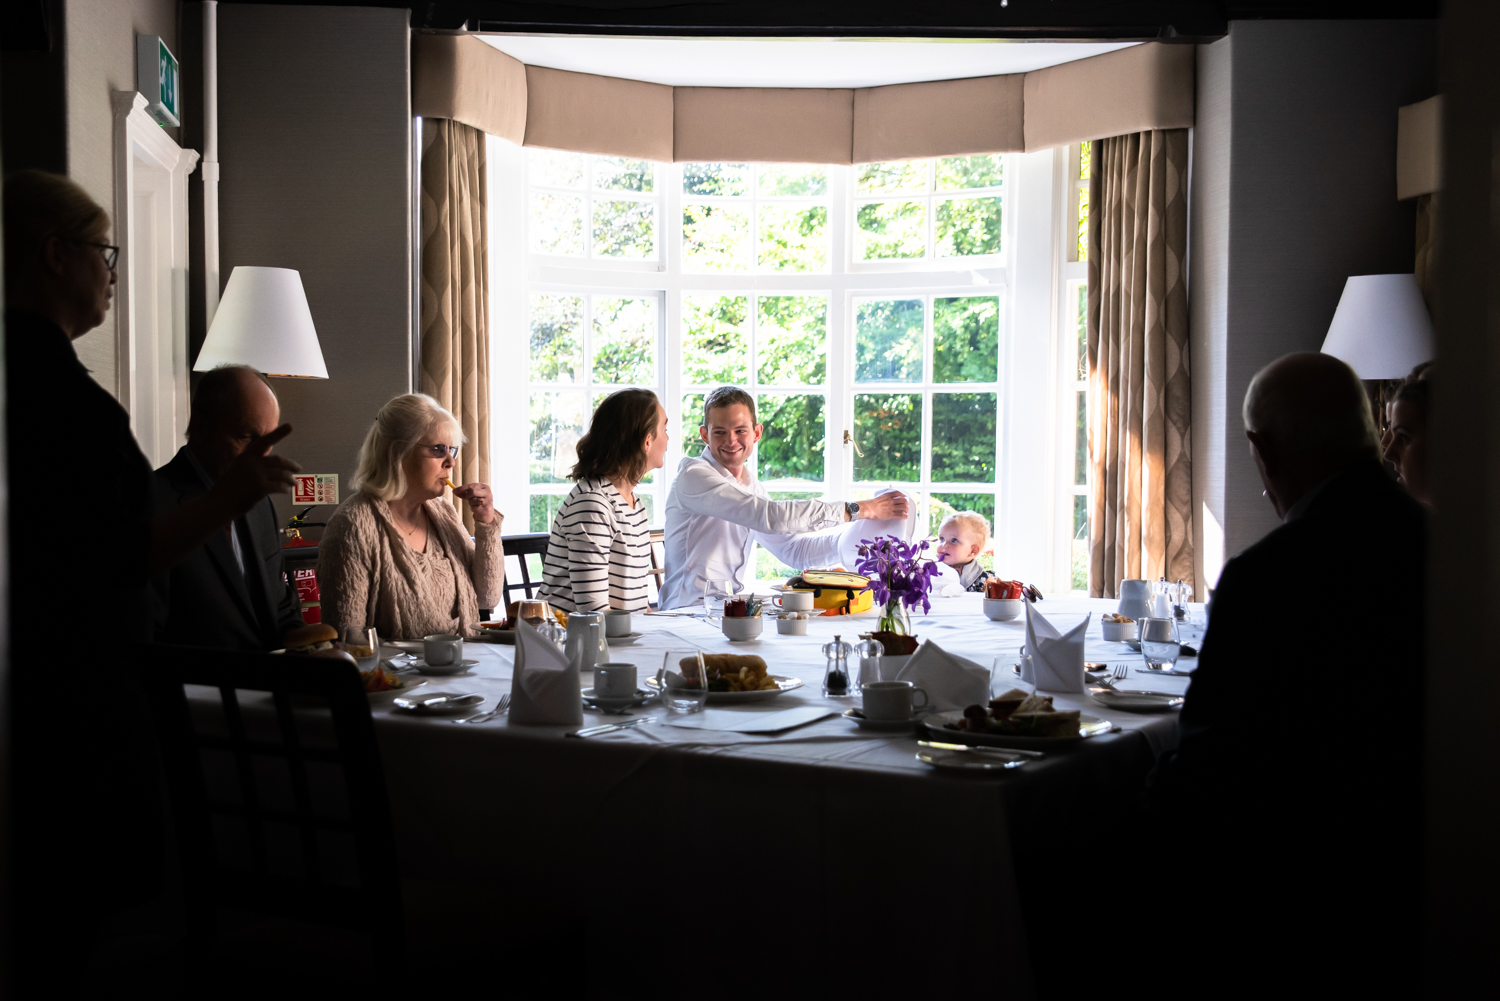 Family brunch before the wedding at the Mere court hotel Knutsford